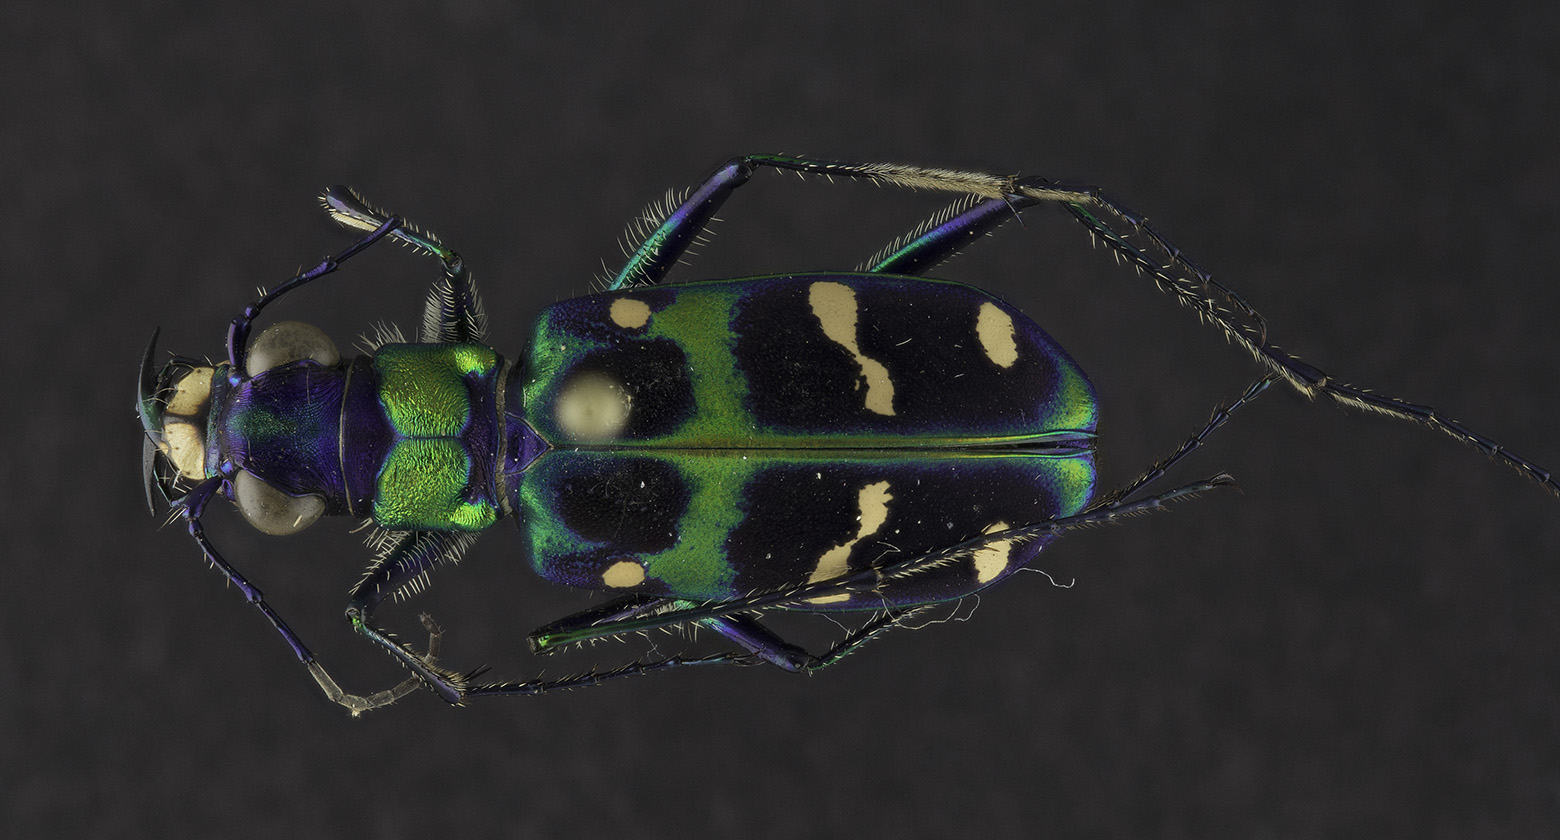 [image] Grand Photos of Humble Bugs: Digitizing our Entomology Collection